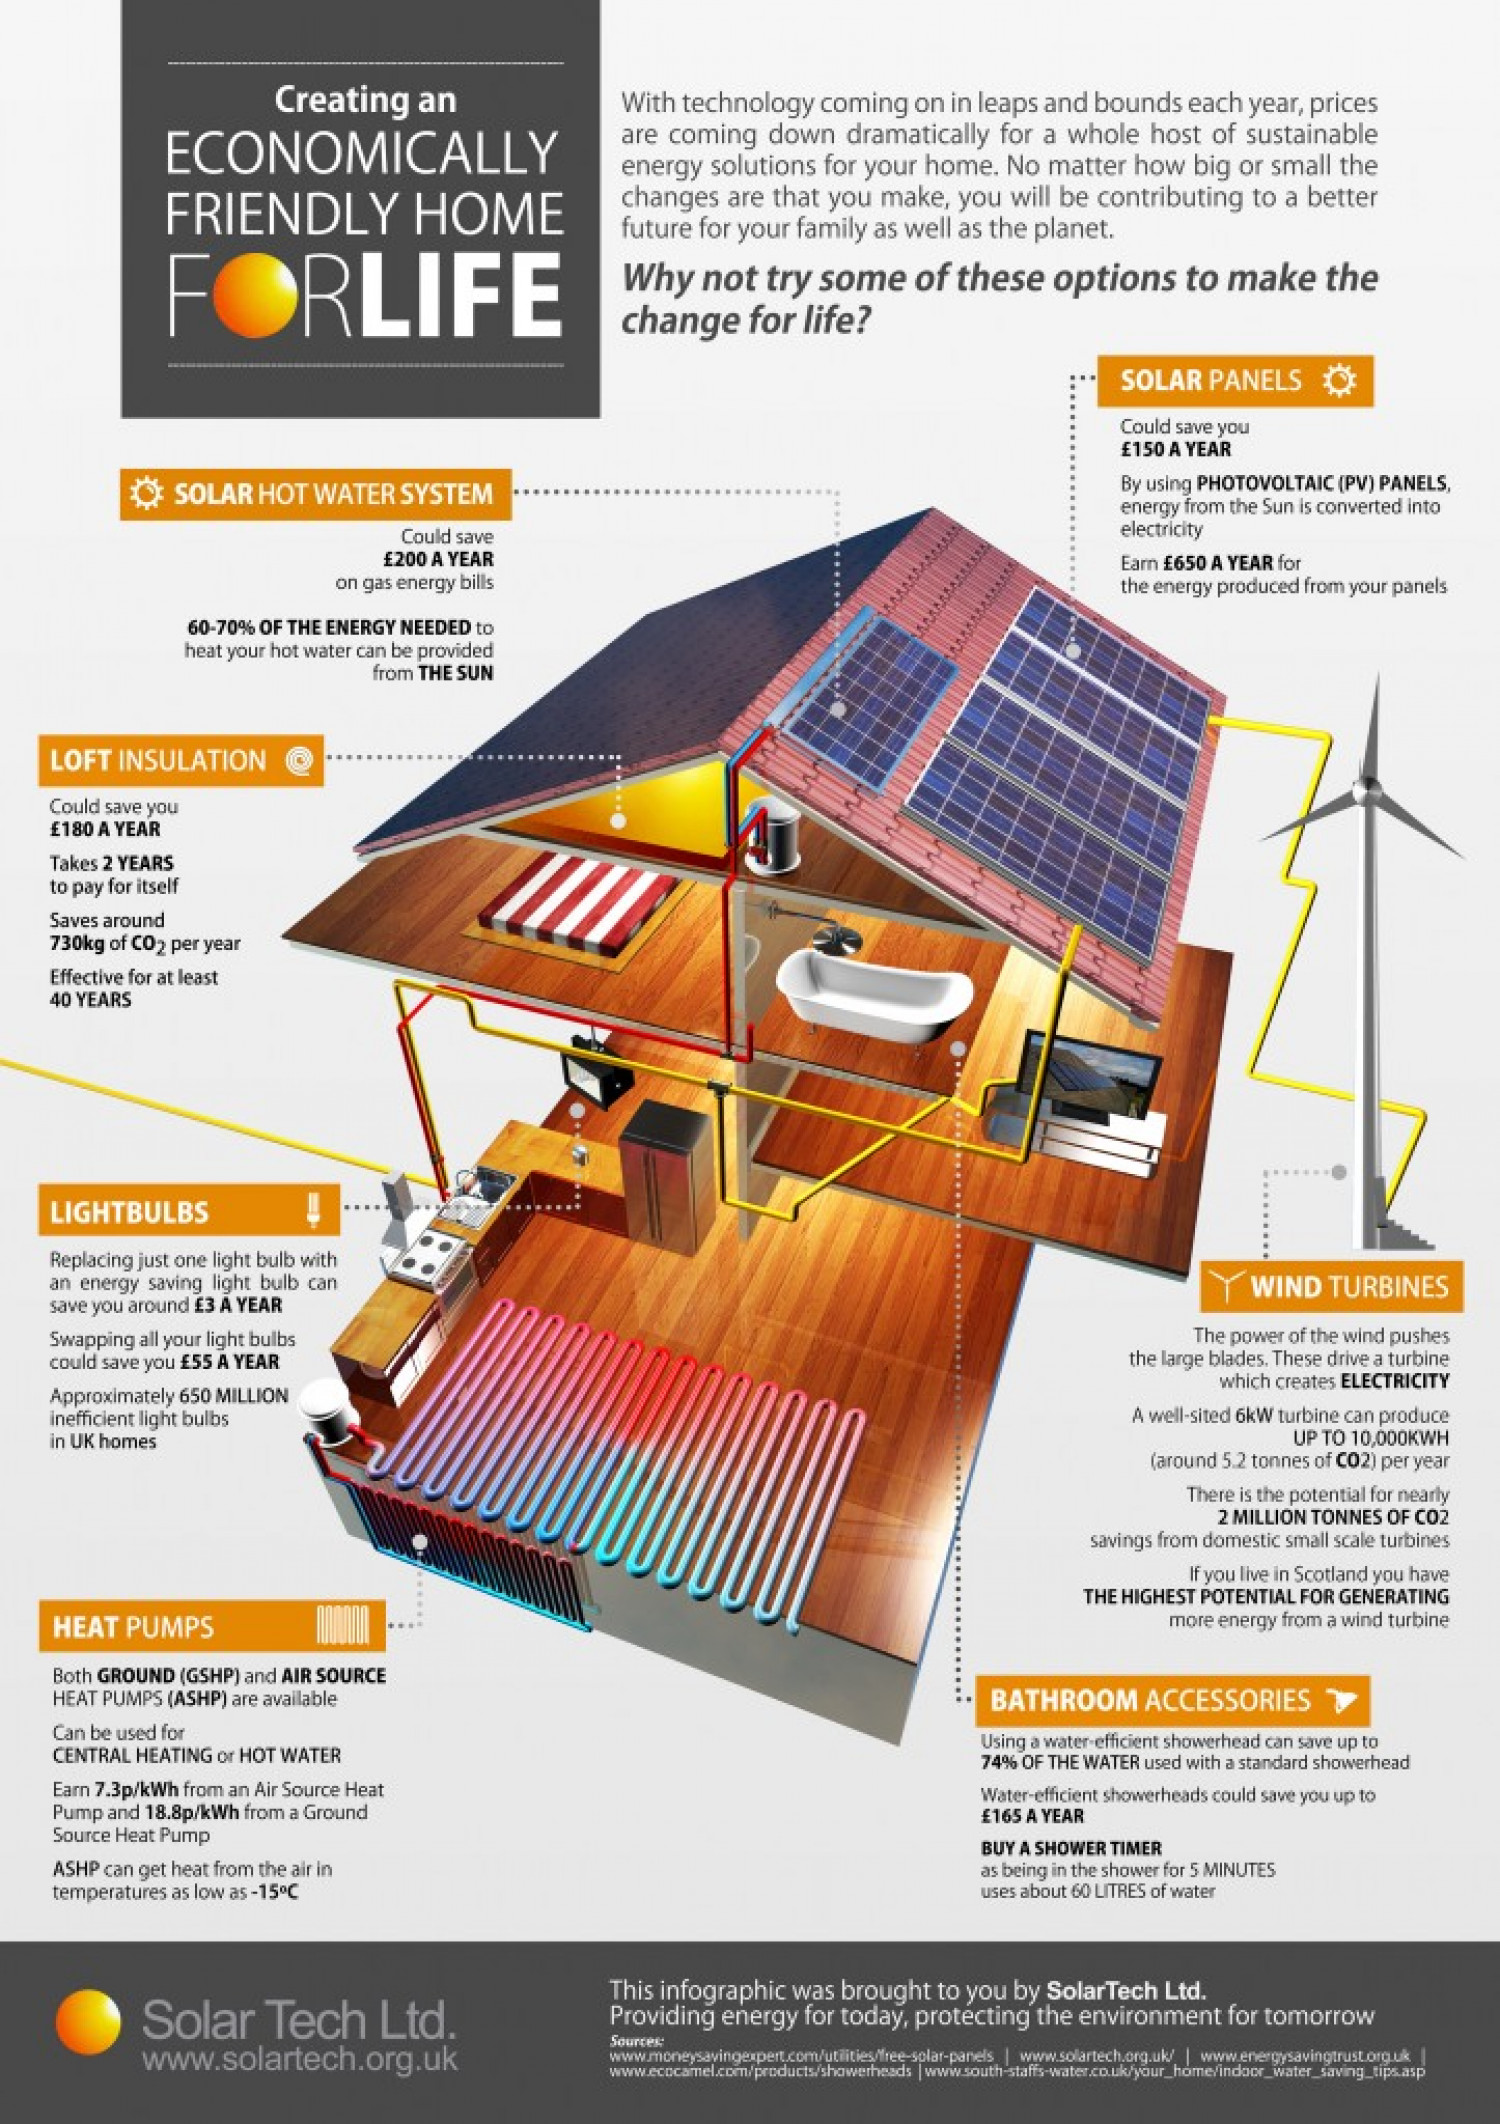 Create an Economically Friendly Home For Life  Infographic